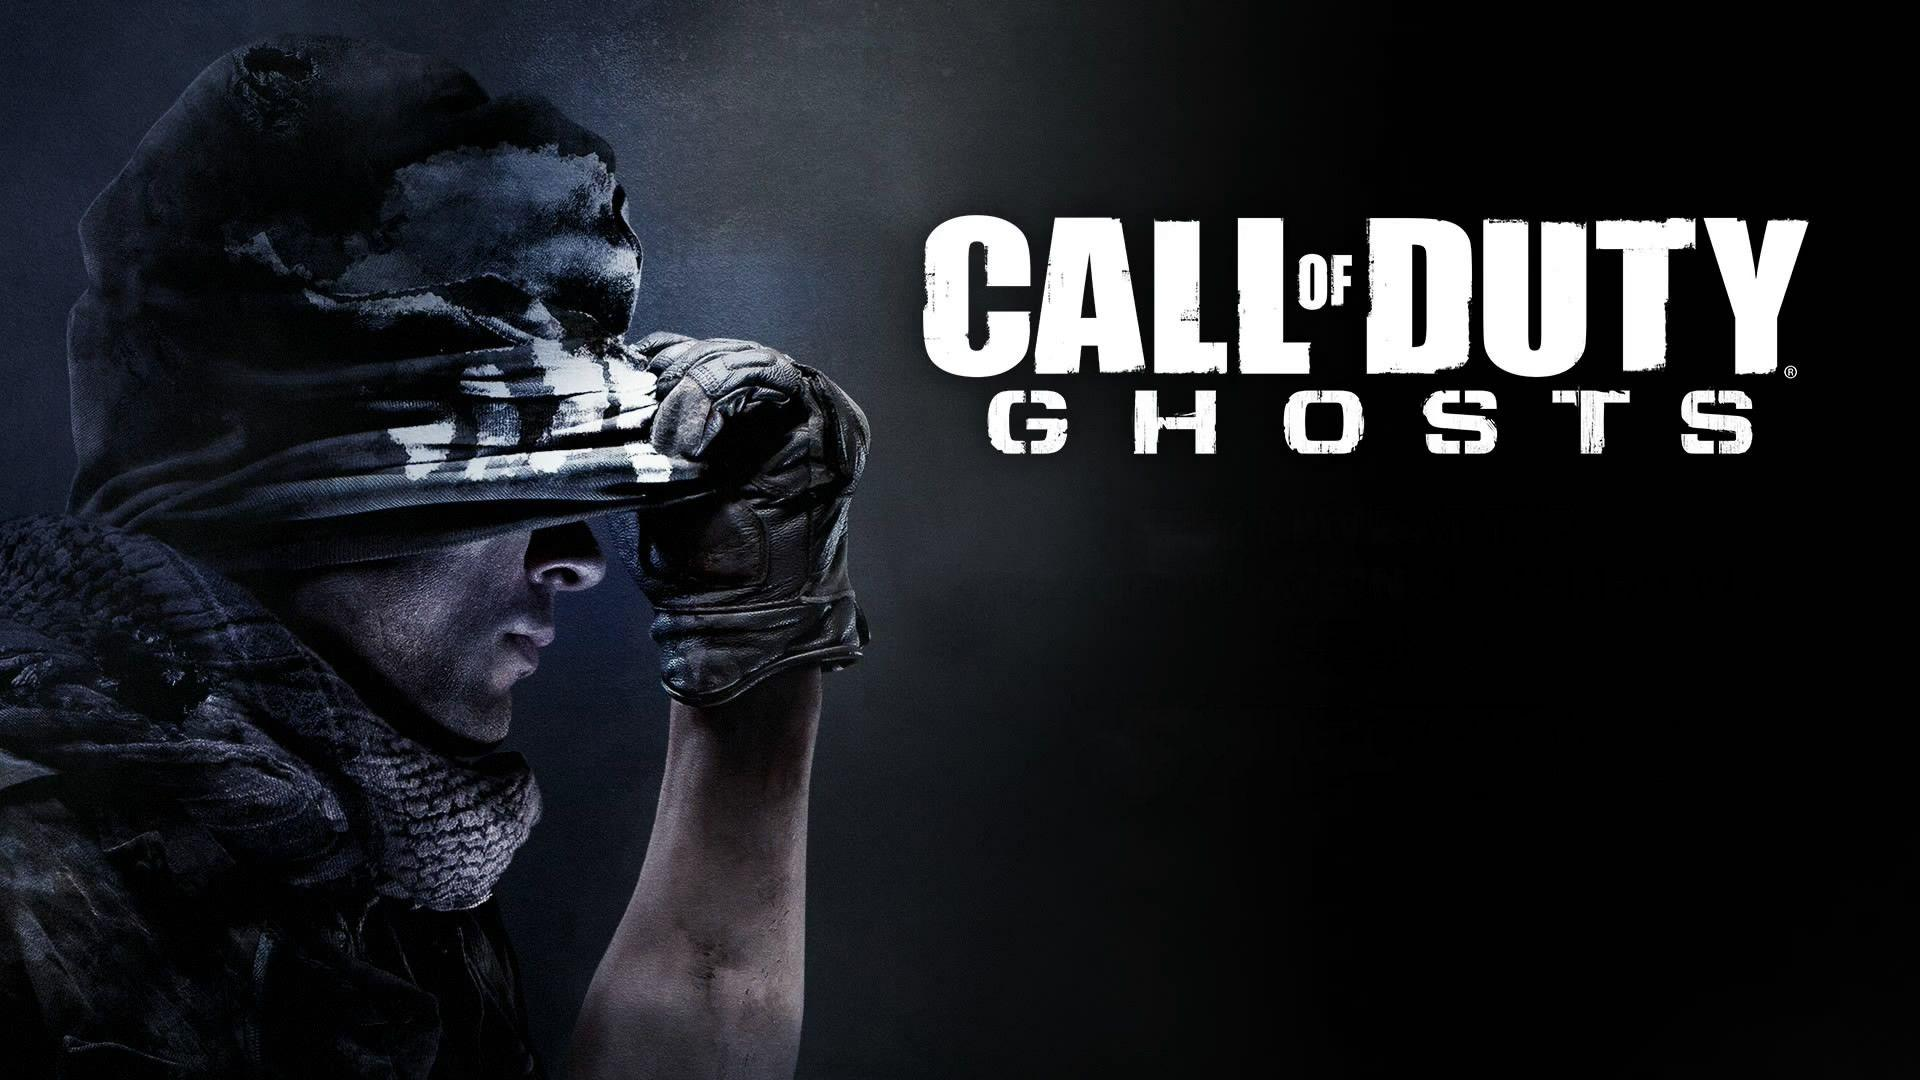 Call of Duty Ghosts Wallpapers | HD Wallpapers